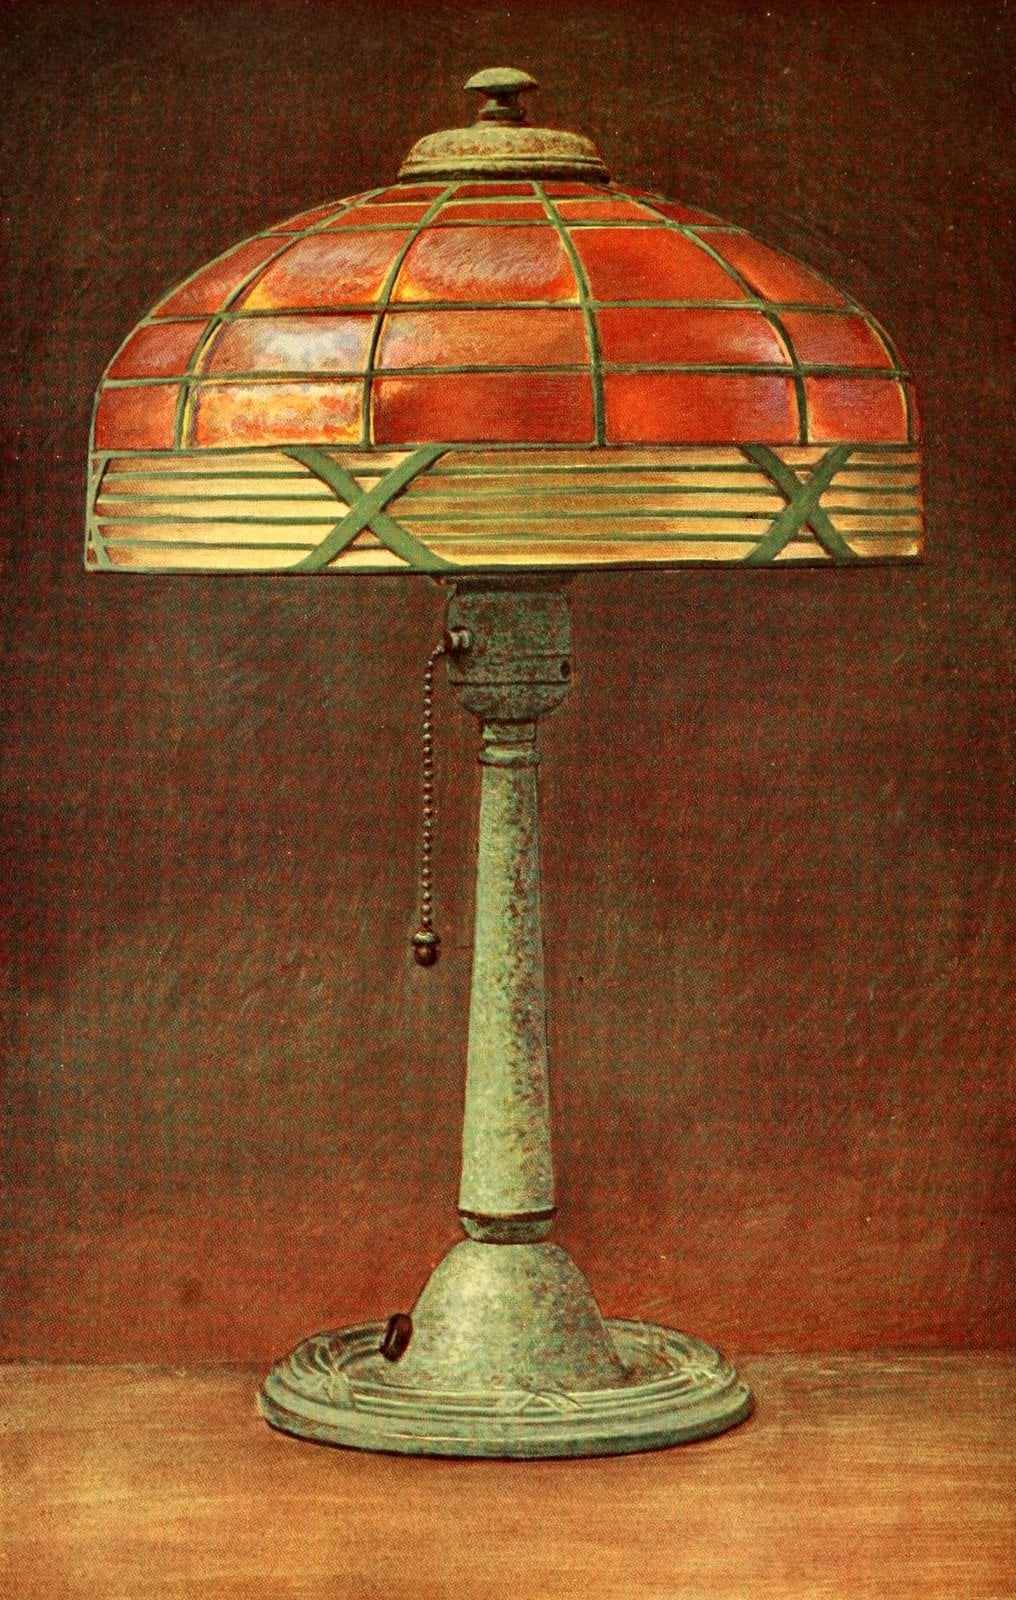 Antique desk lamp with stained glass shade (1912)